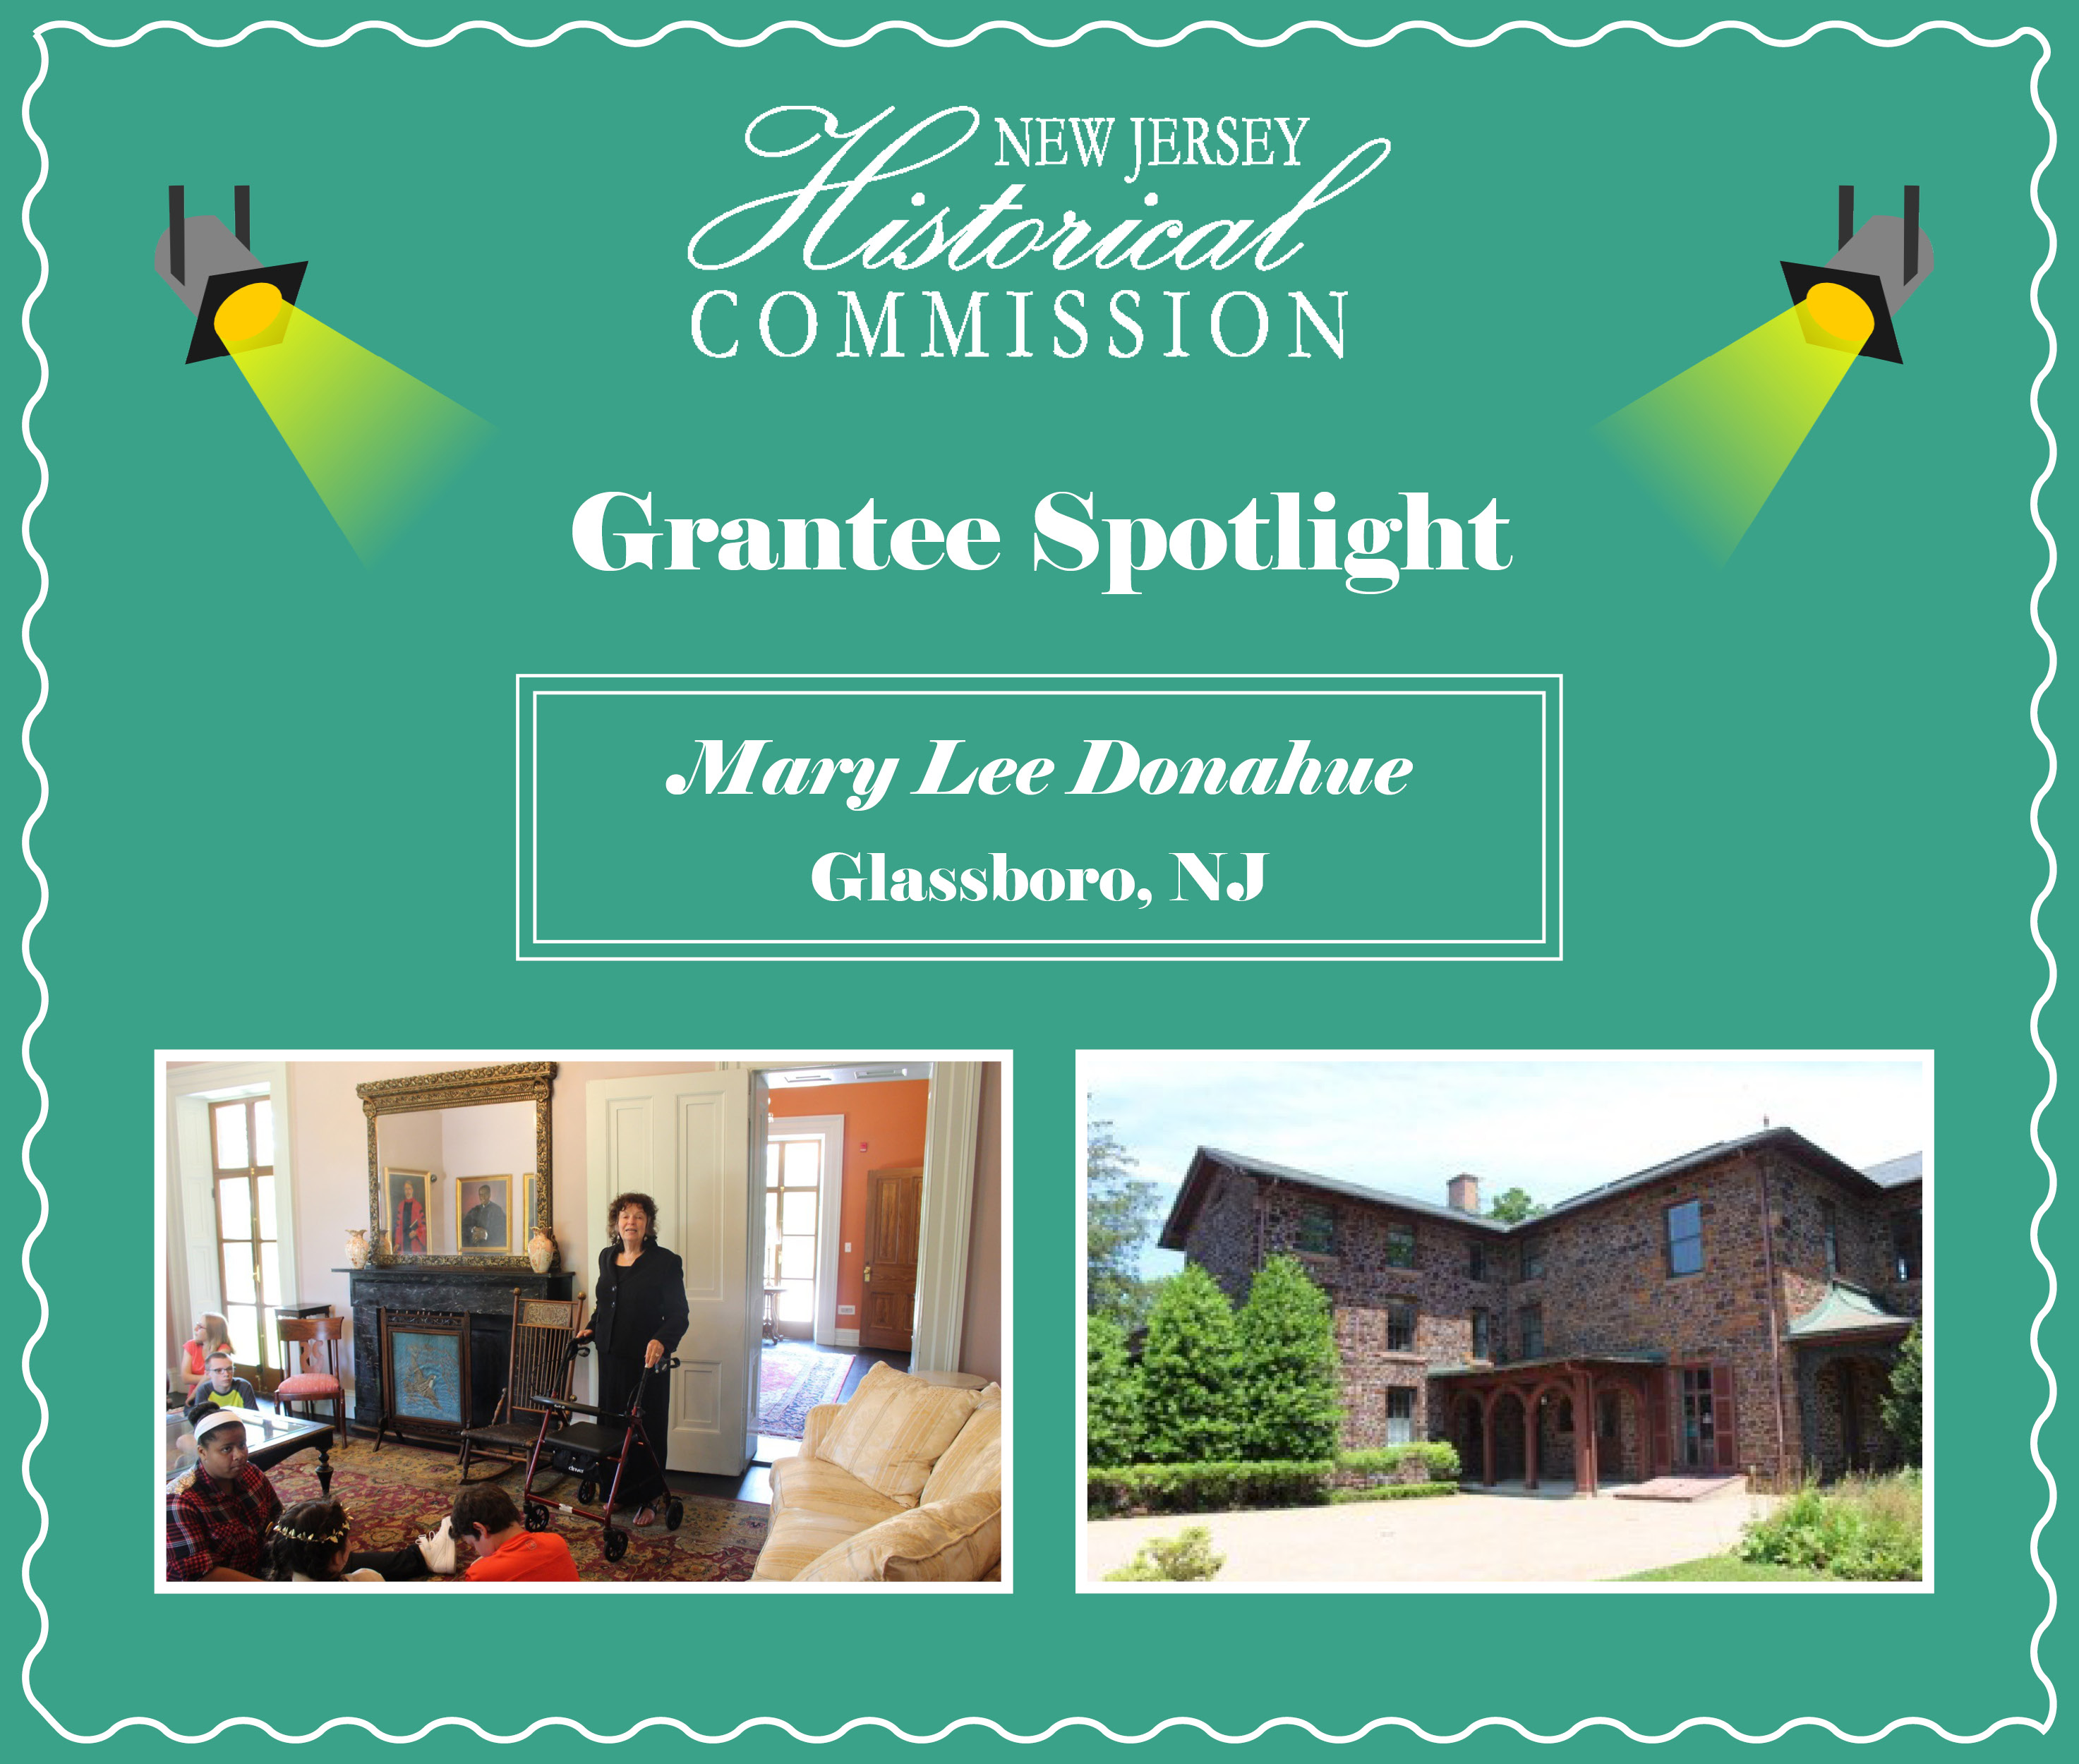 New Jersey Historical Commission (NJHC) Grantee Spotlight: Mary Lee Donahue